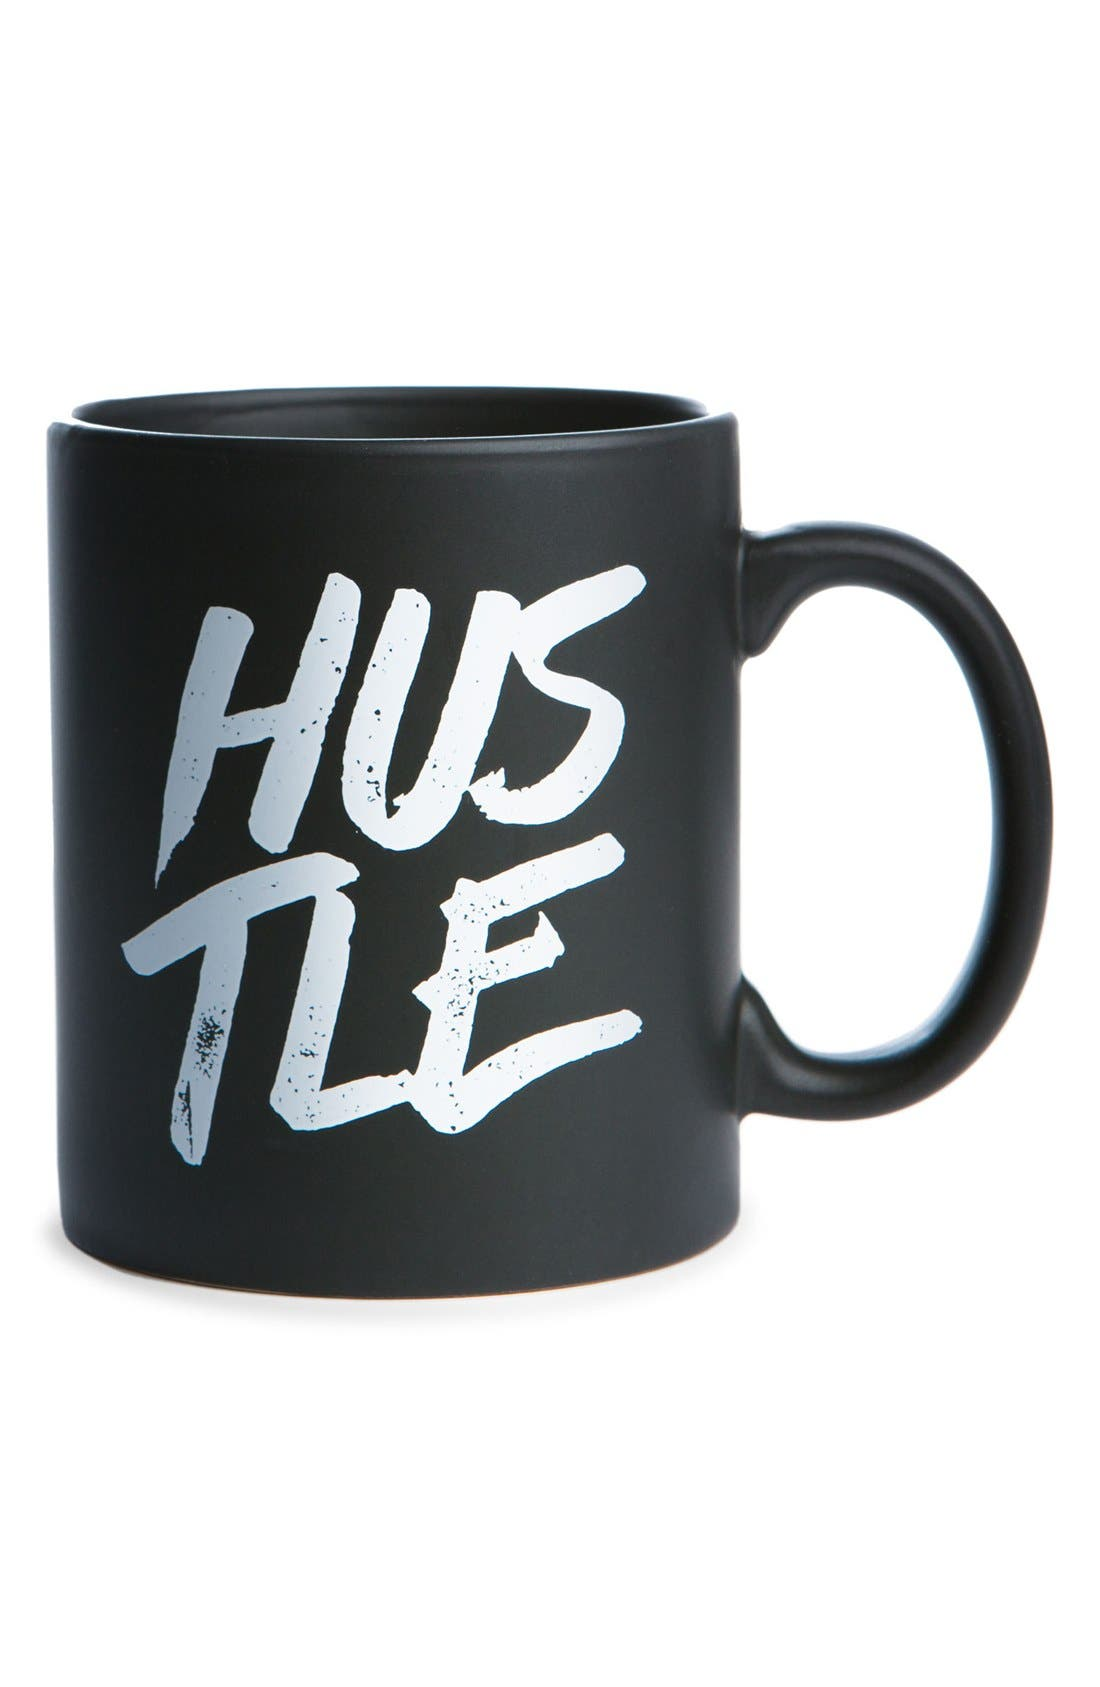 'Hustle' Mug,                         Main,                         color, 001